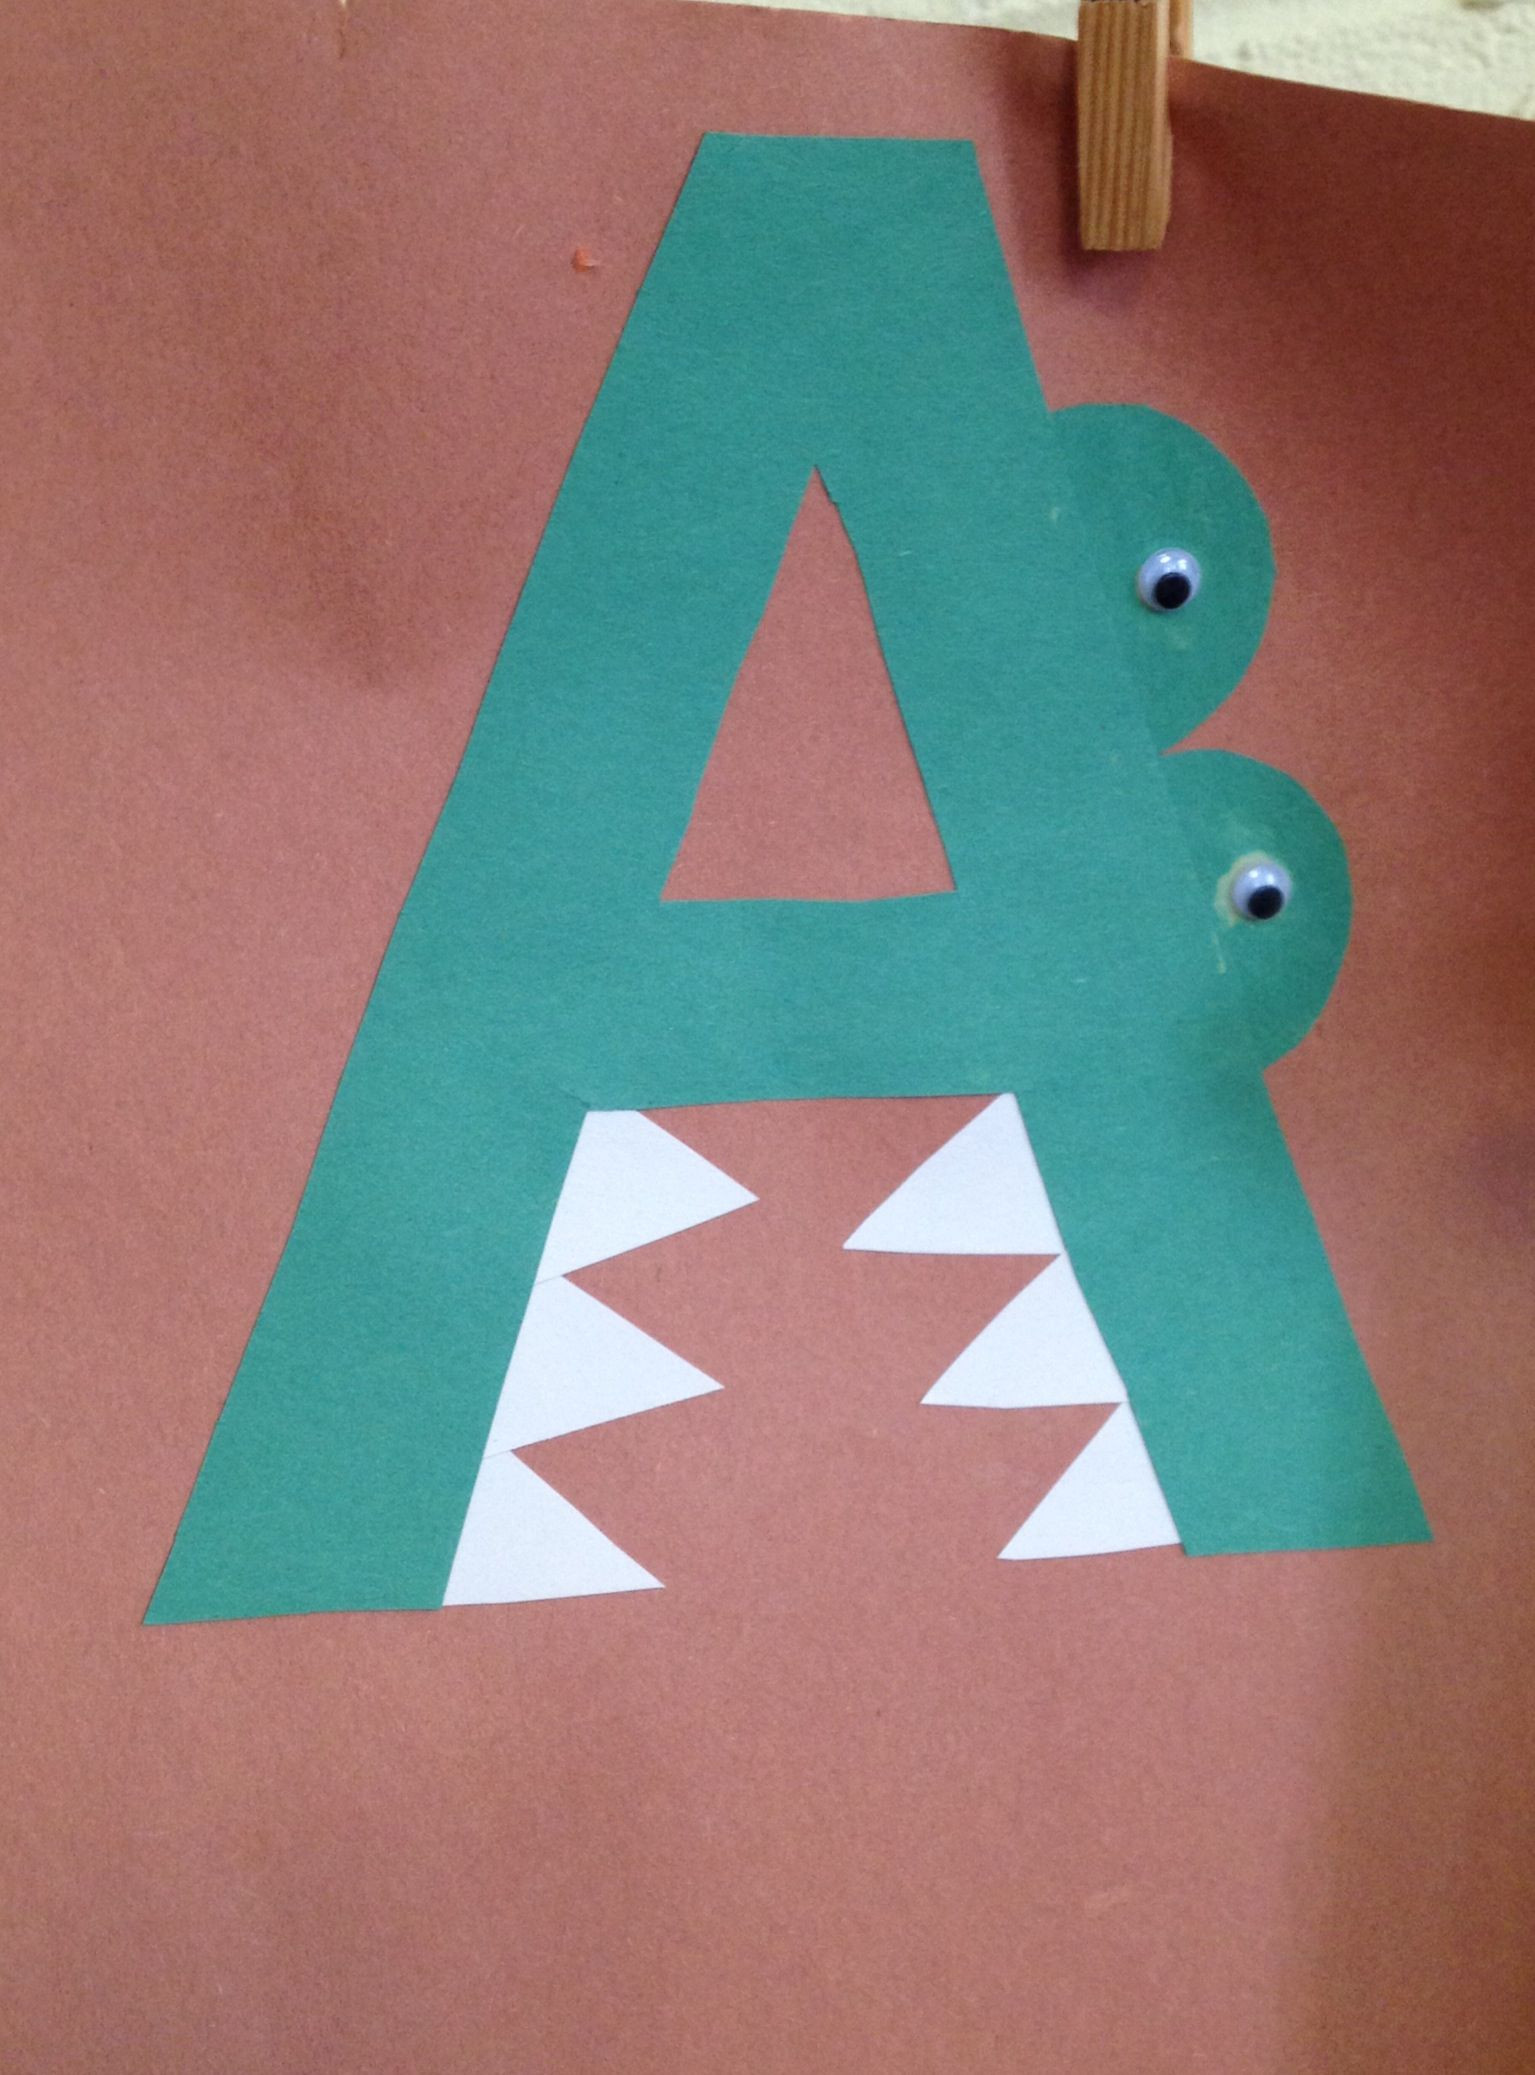 Best ideas about Craft Activities For Preschoolers . Save or Pin Preschool Letter A craft Now.